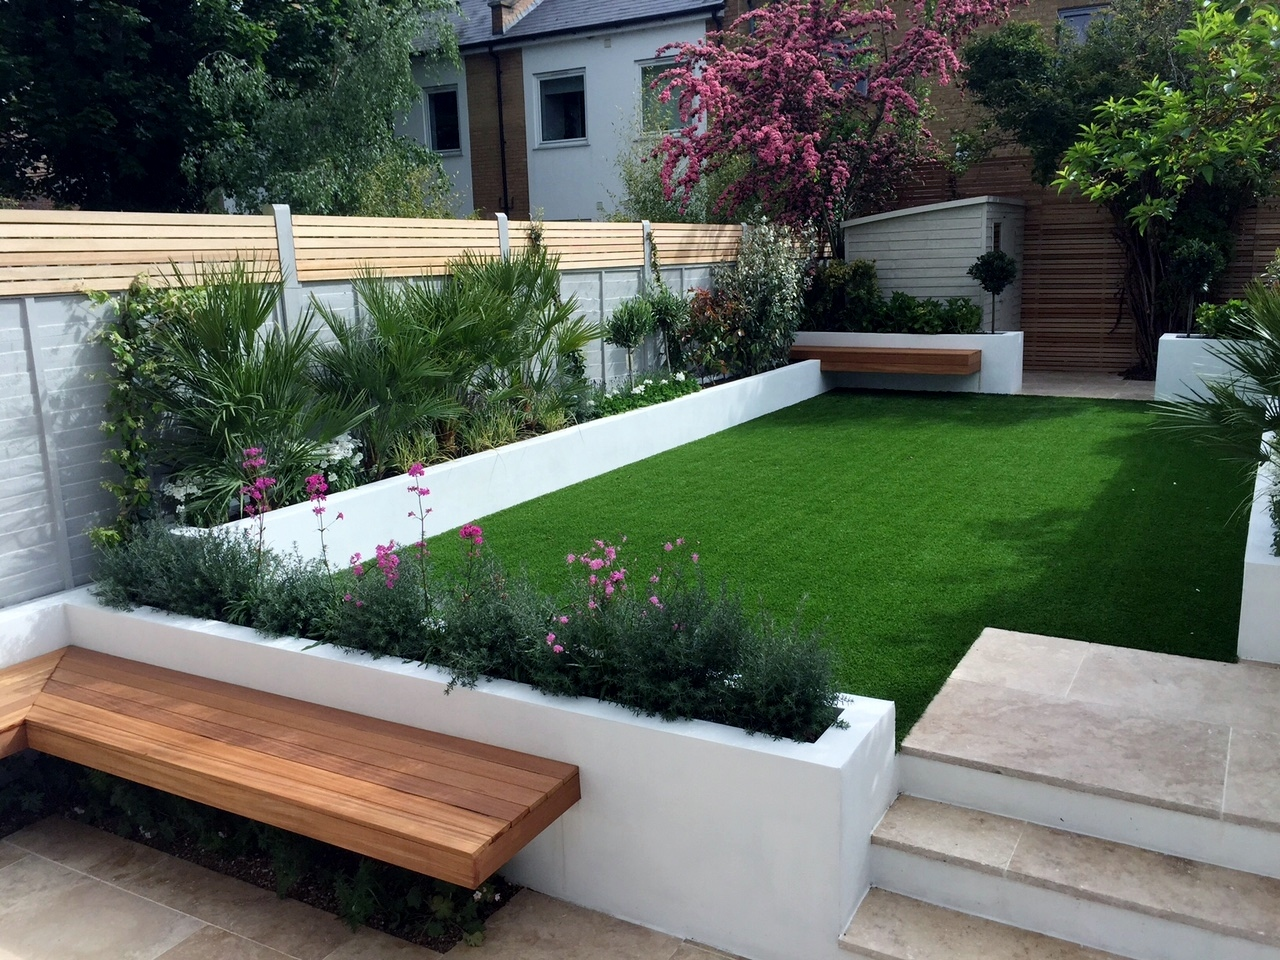 Modern garden design ideas fulham chelsea battersea for Garden design ideas photos